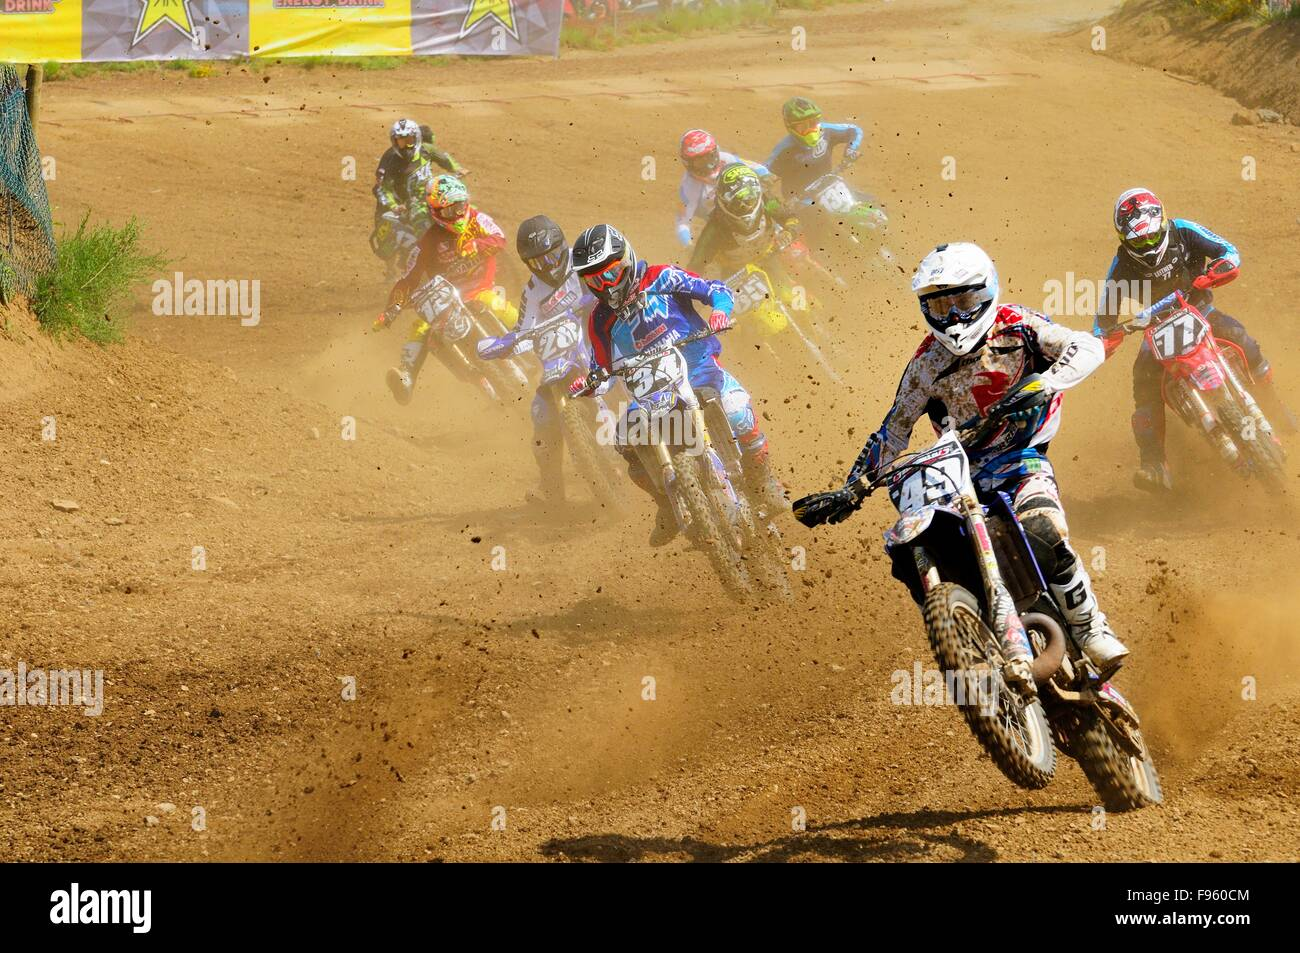 Motocross racing during the Rockstar Energy Pro Nationals at the Wastelands track in Nanaimo, BC. - Stock Image